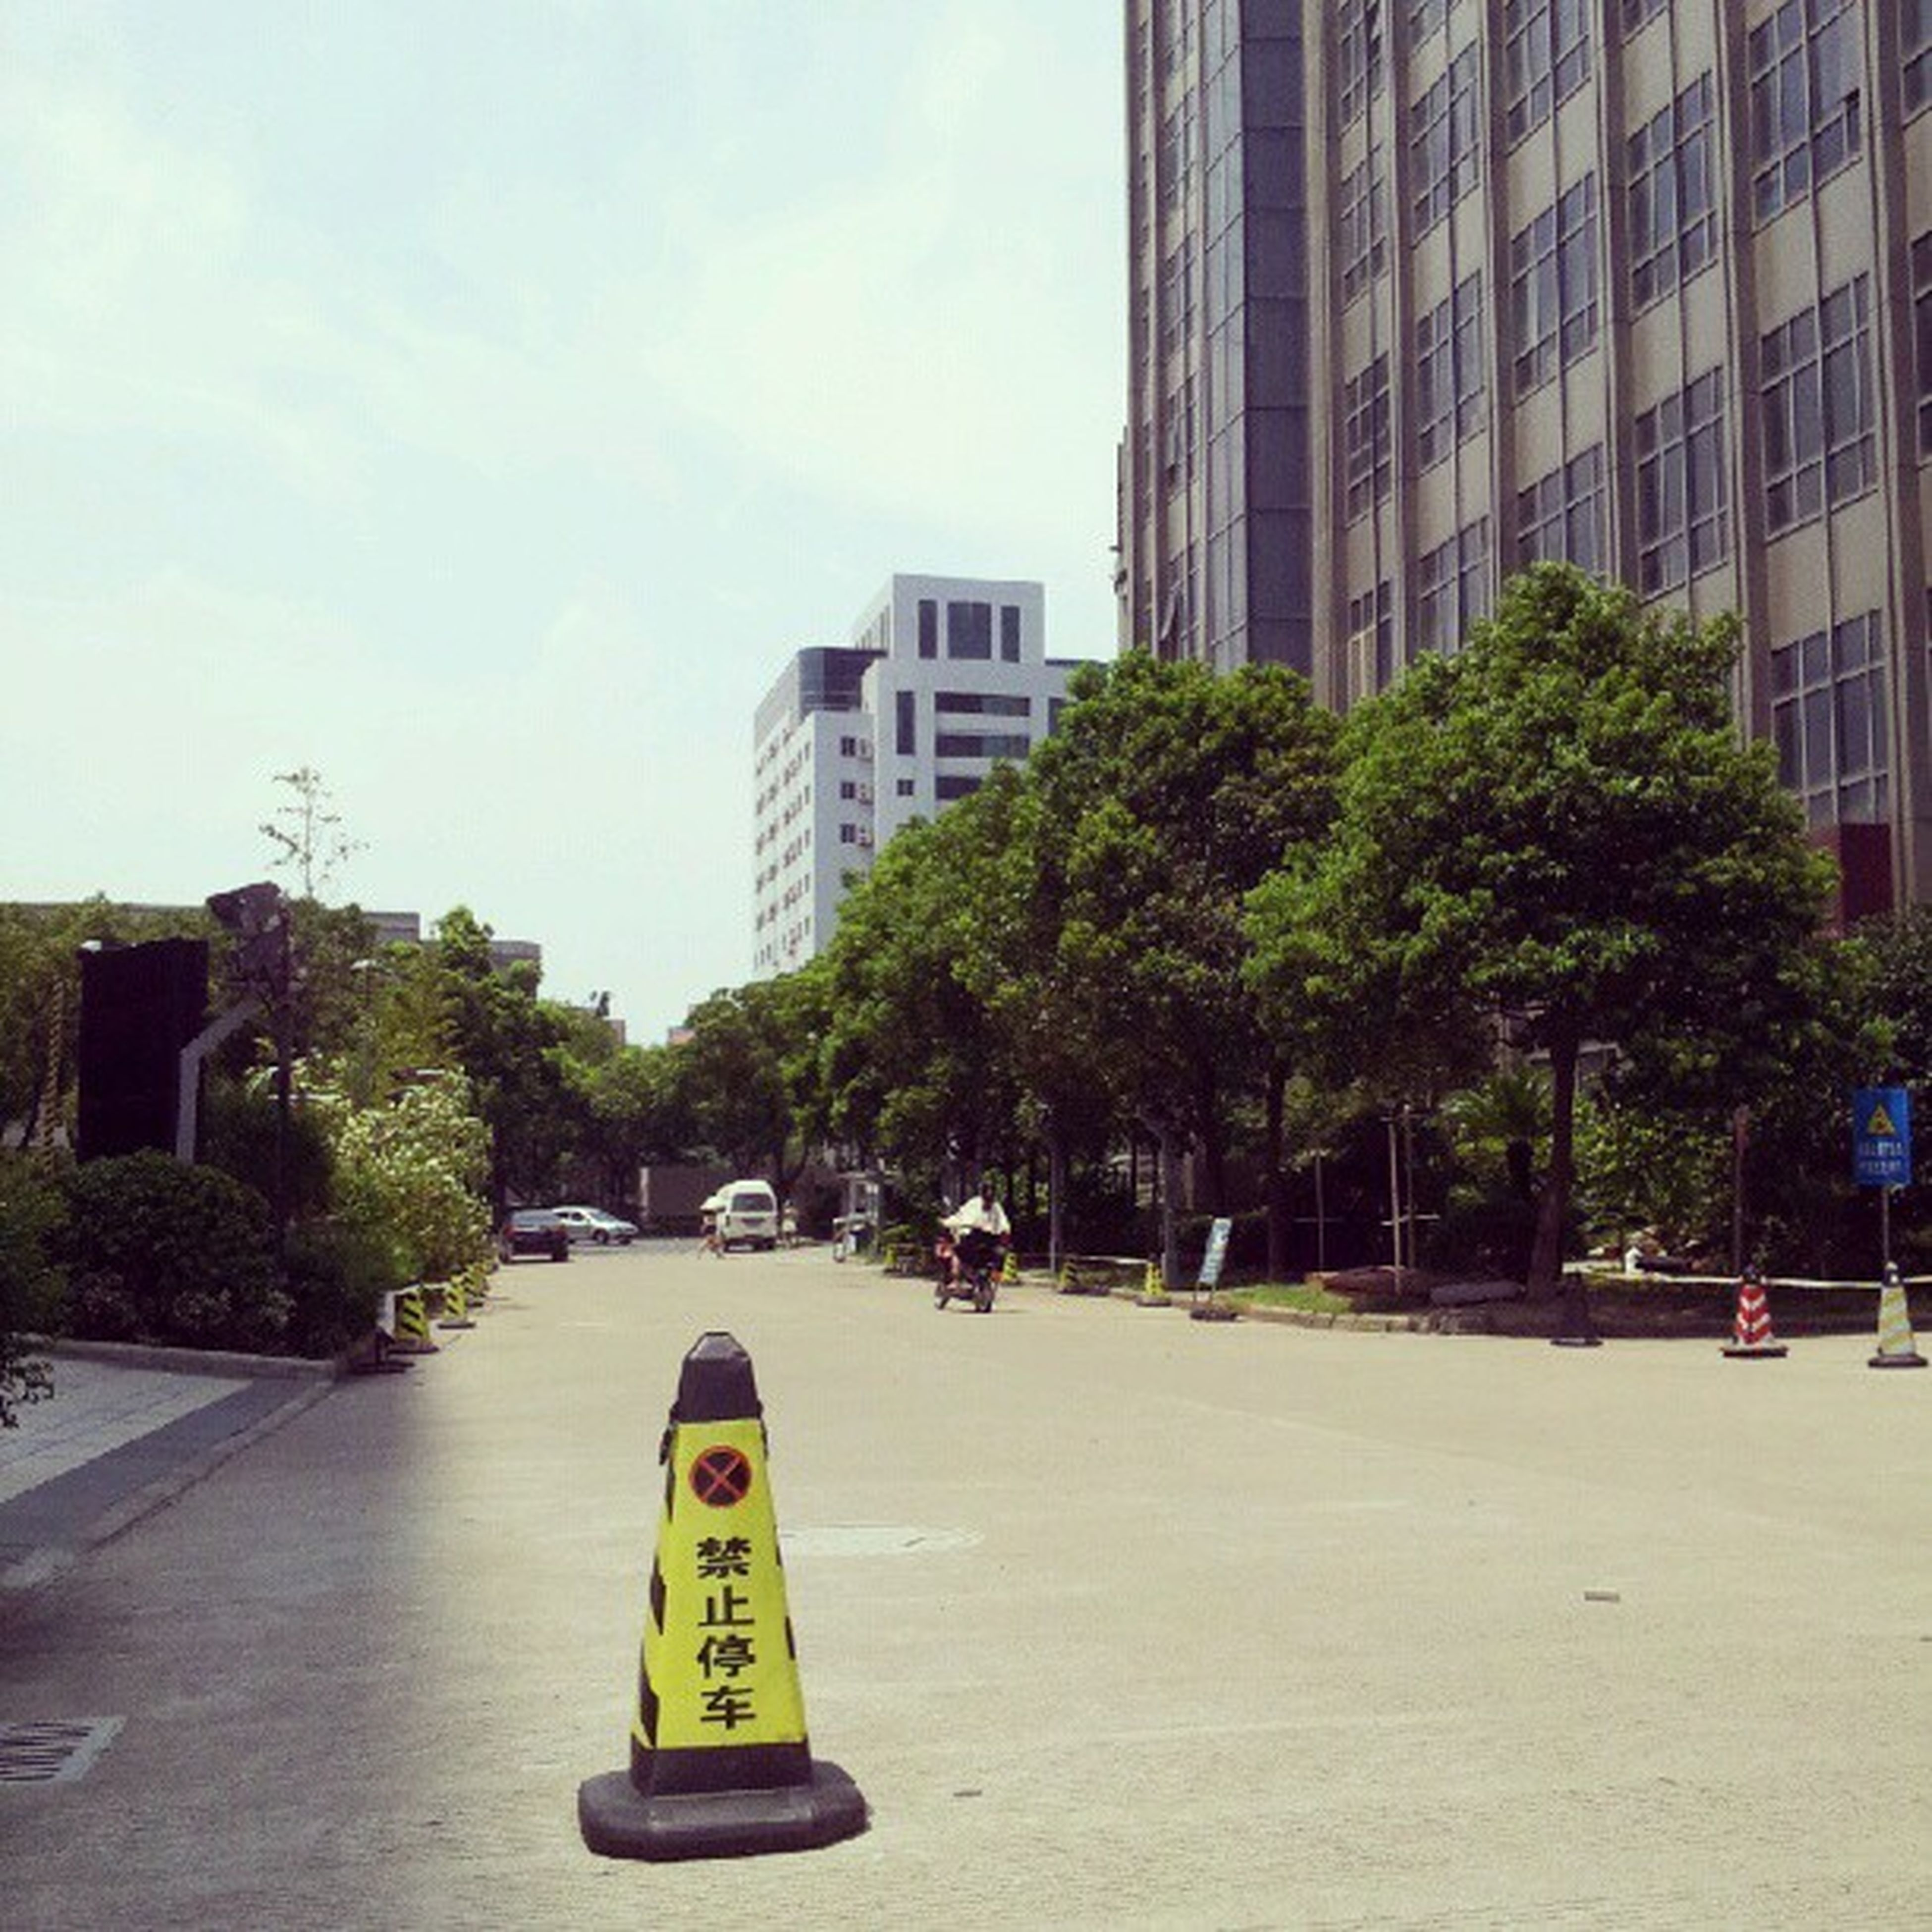 building exterior, architecture, built structure, city, tree, street, transportation, communication, office building, road, skyscraper, city life, sky, building, tower, car, text, road sign, tall - high, modern